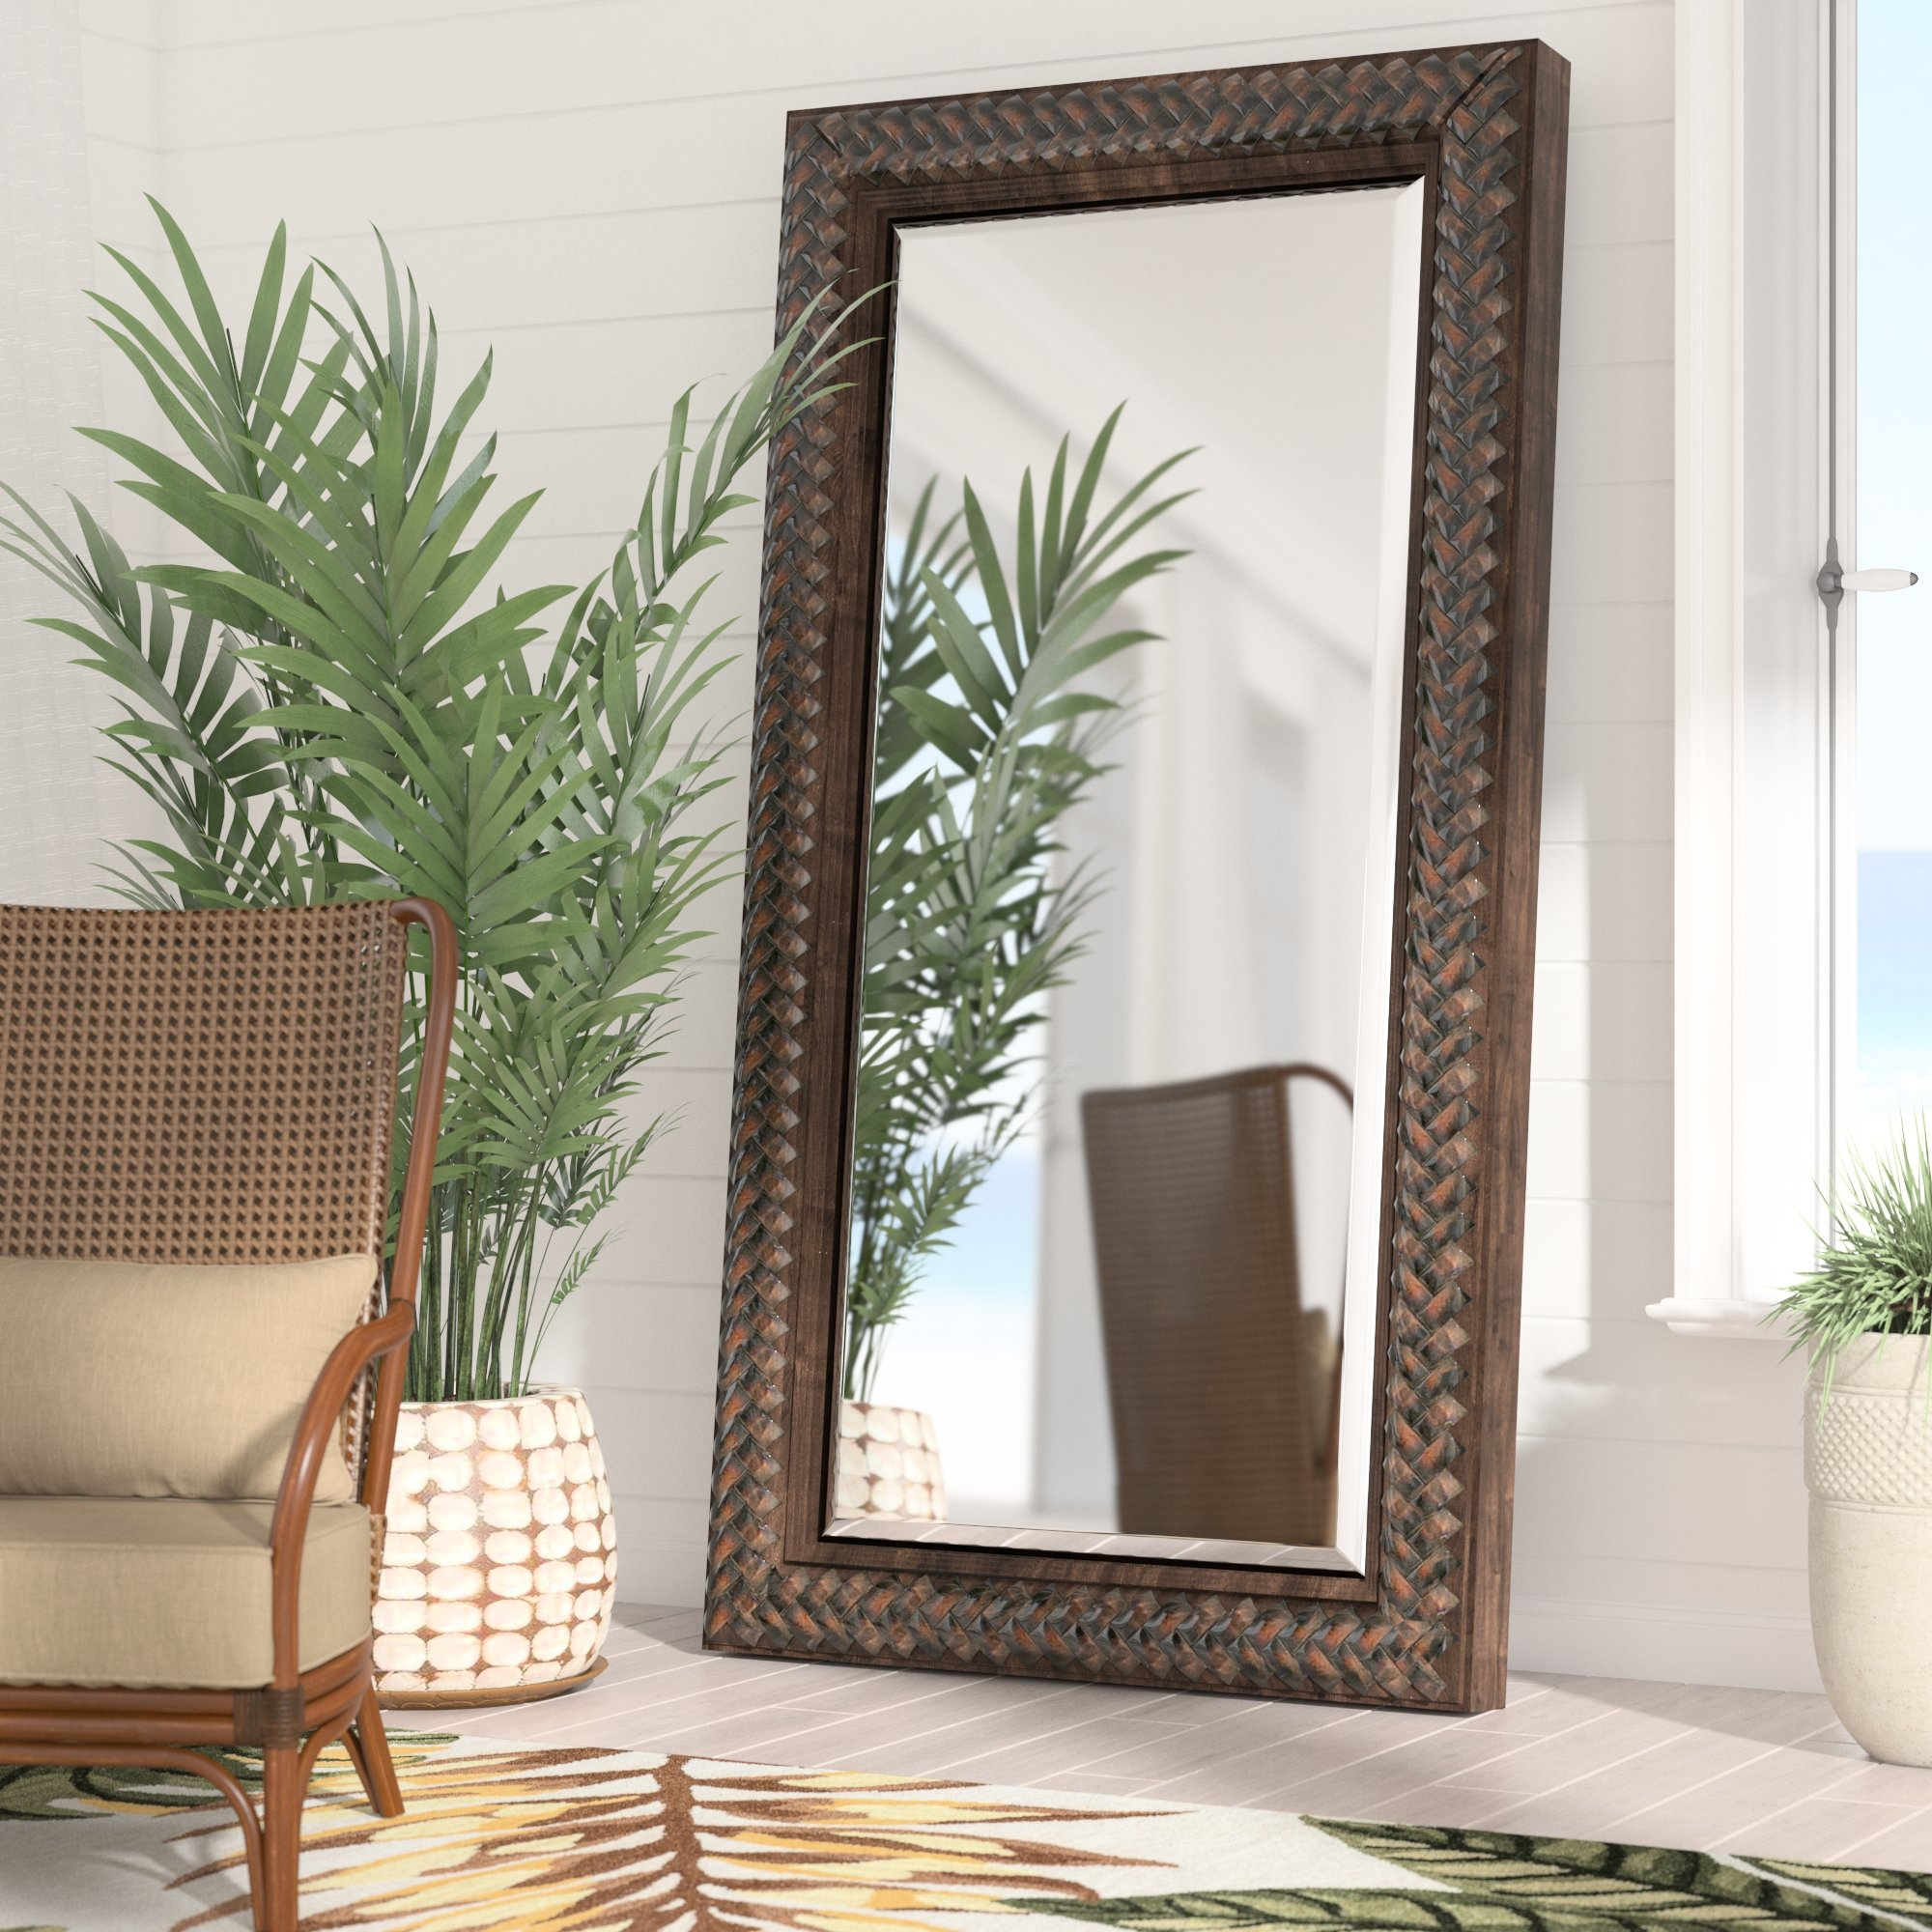 Farmhouse & Rustic Floor Mirrors | Birch Lane With Regard To Dalessio Wide Tall Full Length Mirrors (View 21 of 30)